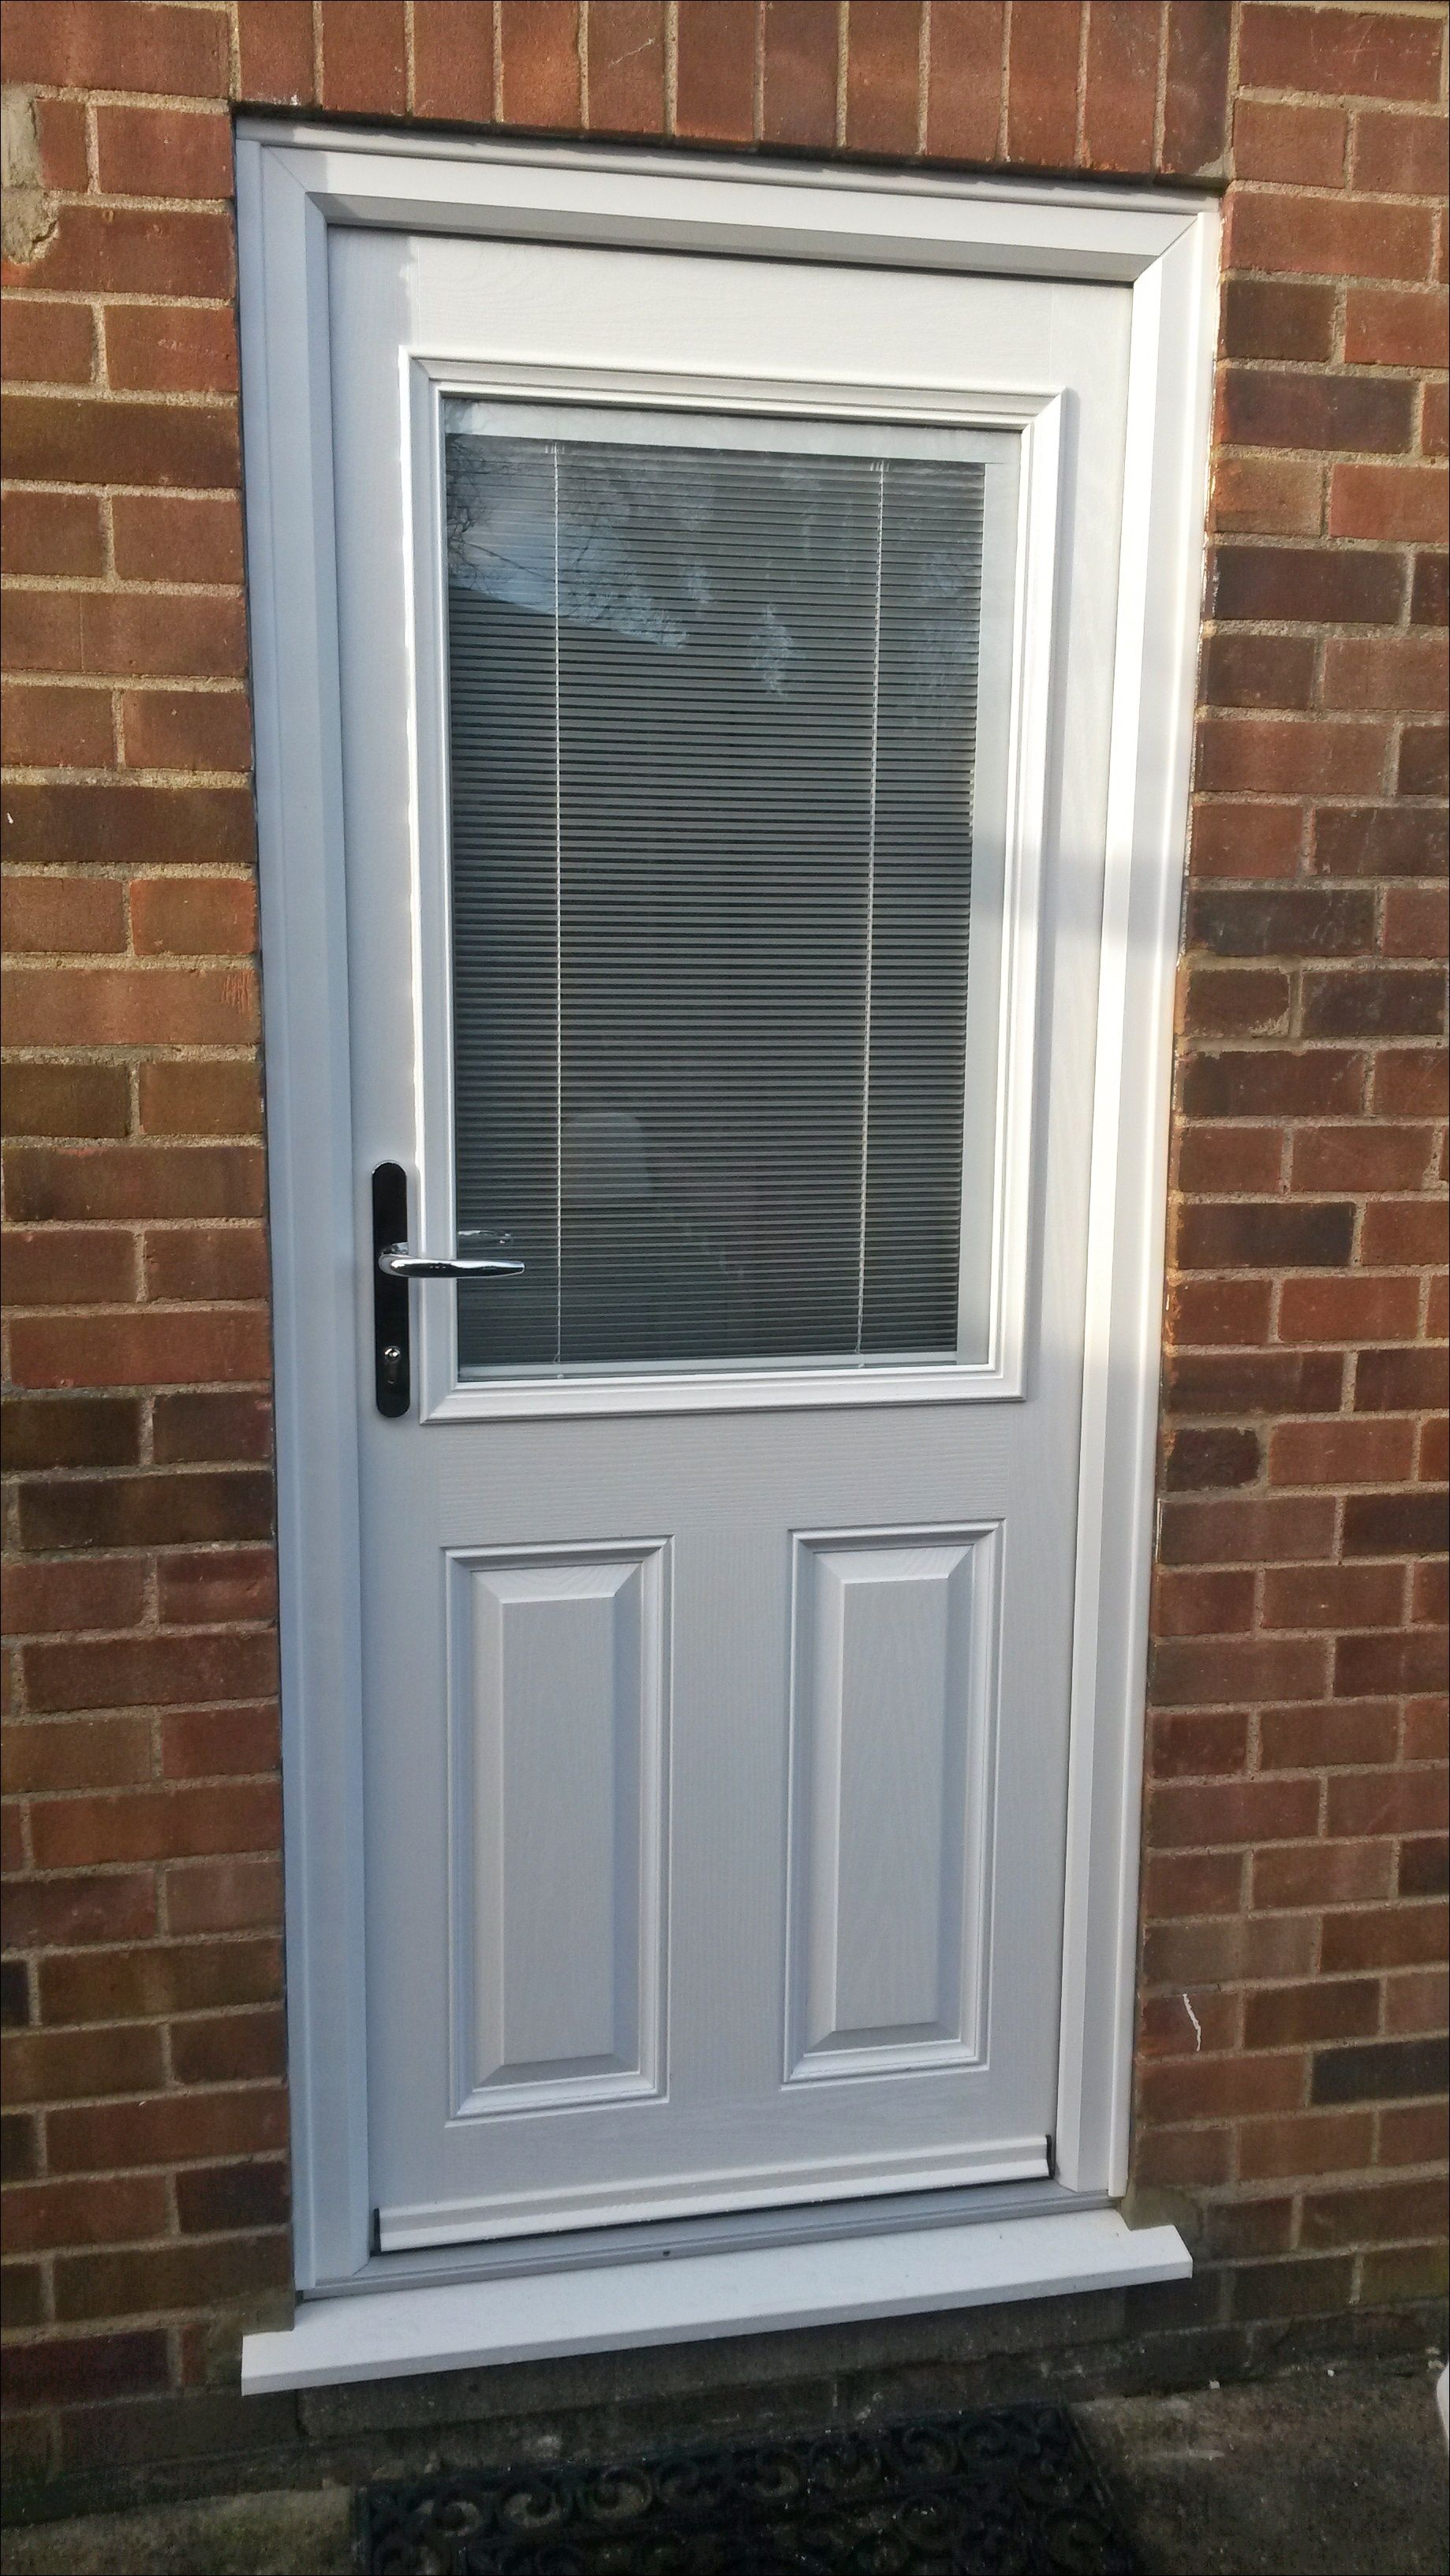 Upvc Rear Entrance Door With Integrated Blind Supplied And Installed By Unicorn Windows Ltd Of Leighton Buzzard Double Glazing Windows House Designs Exterior